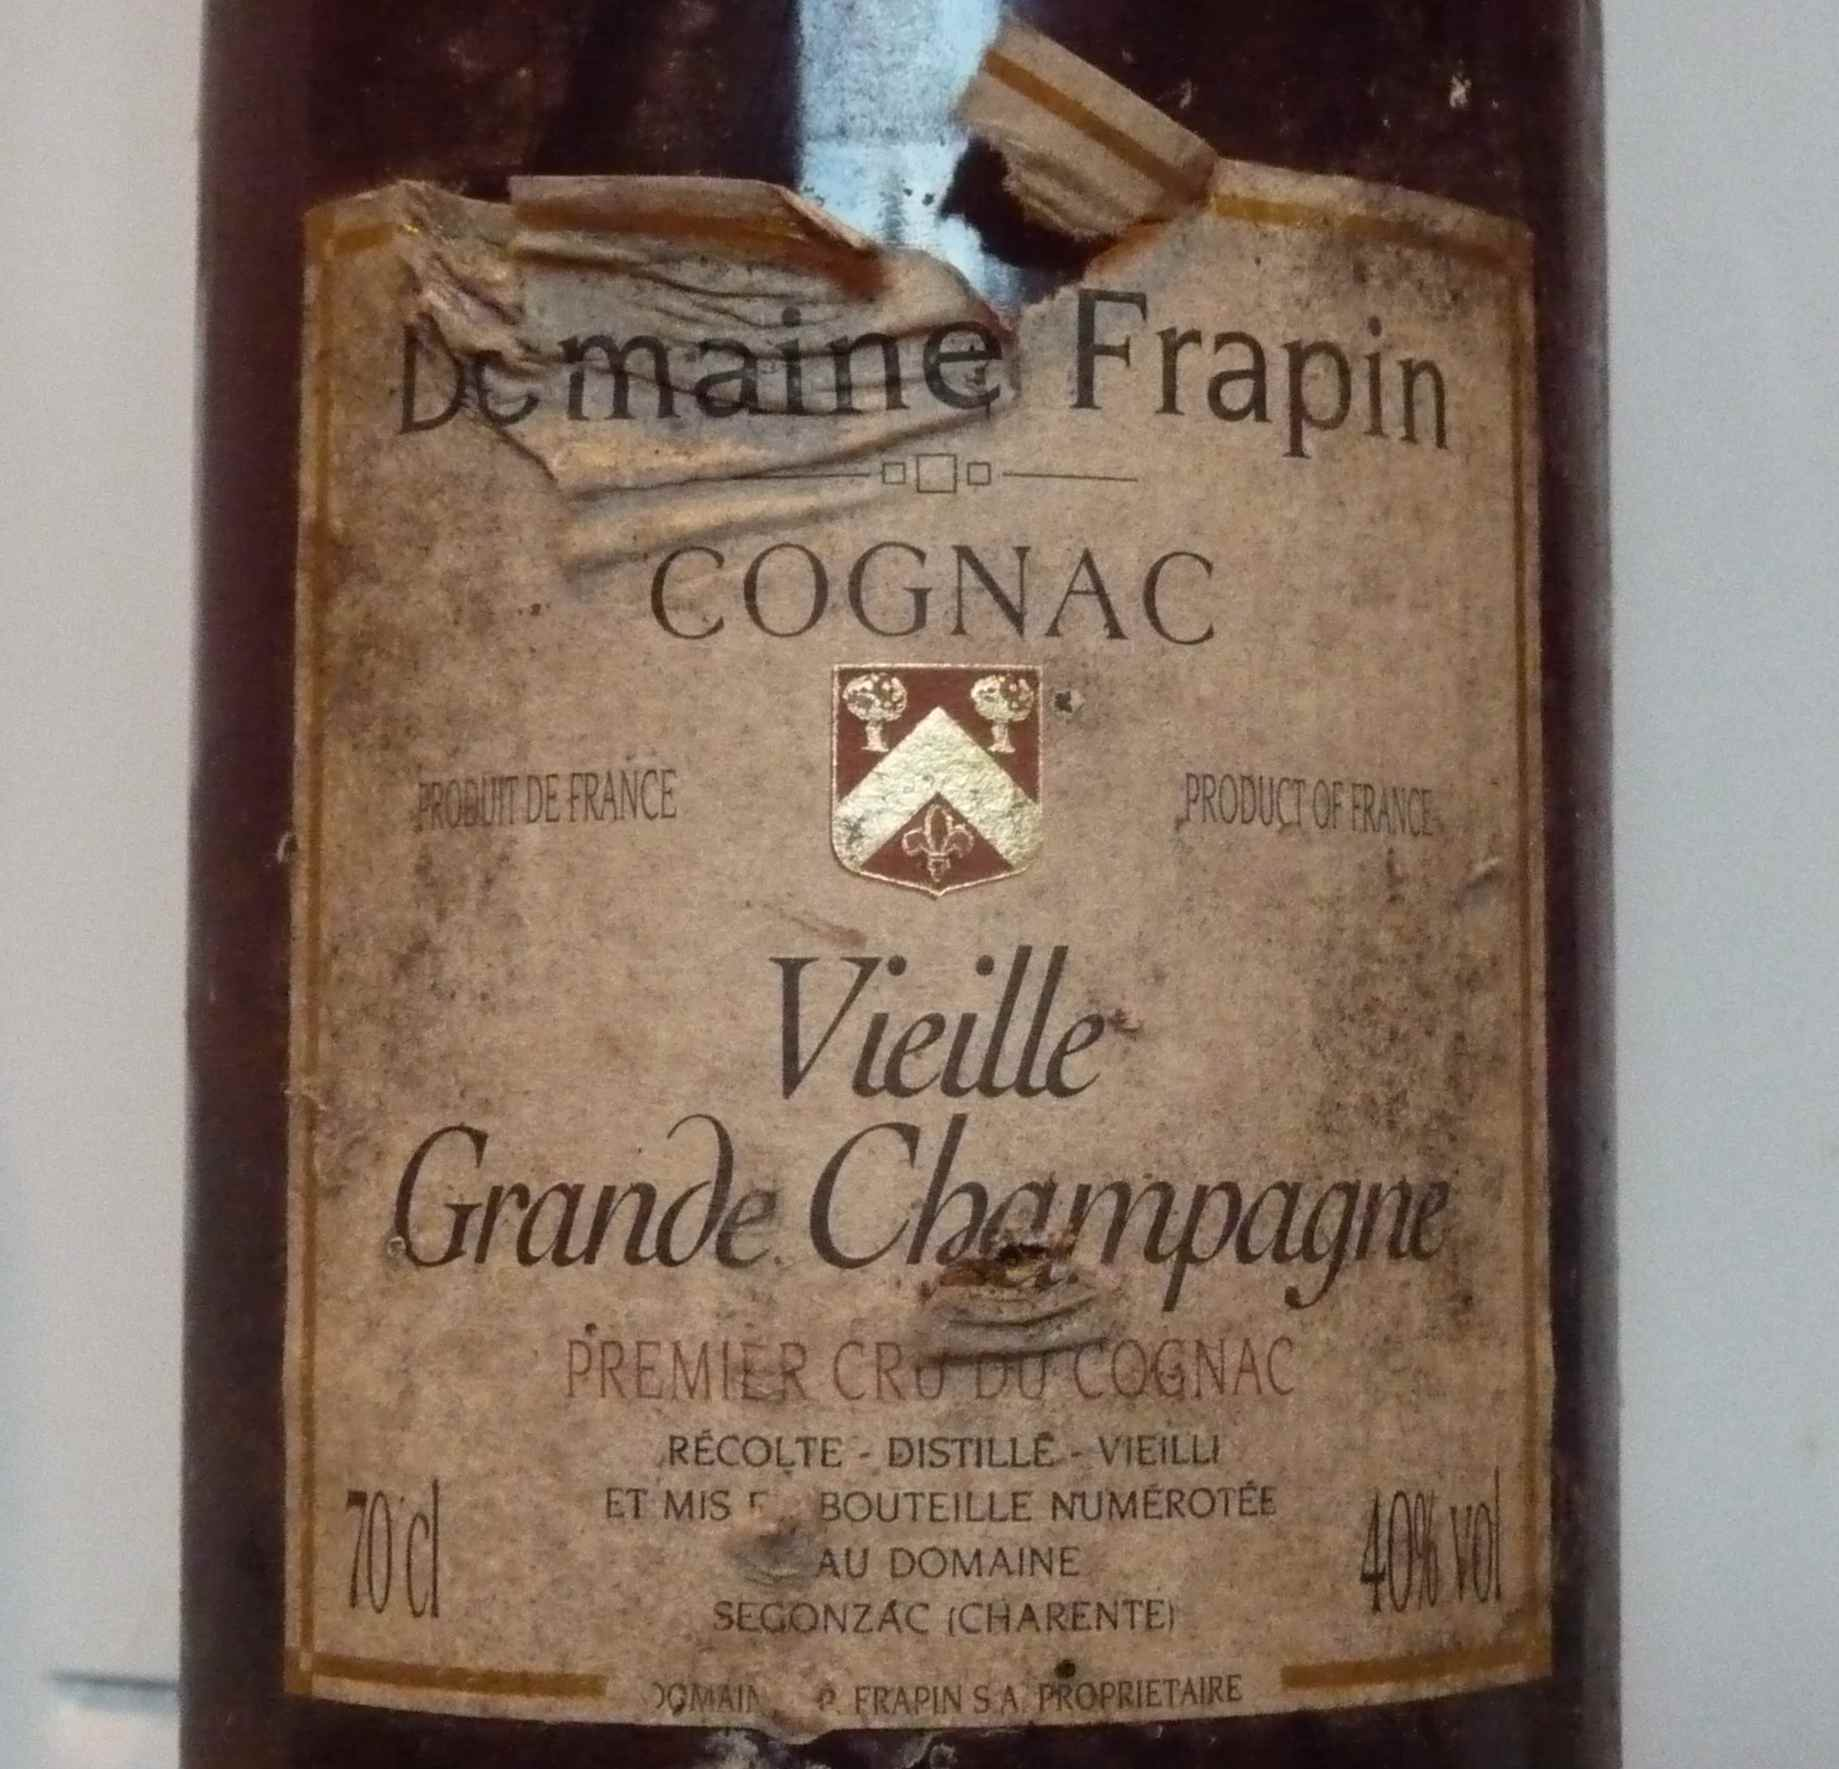 Label of Vieille Grande Champagne